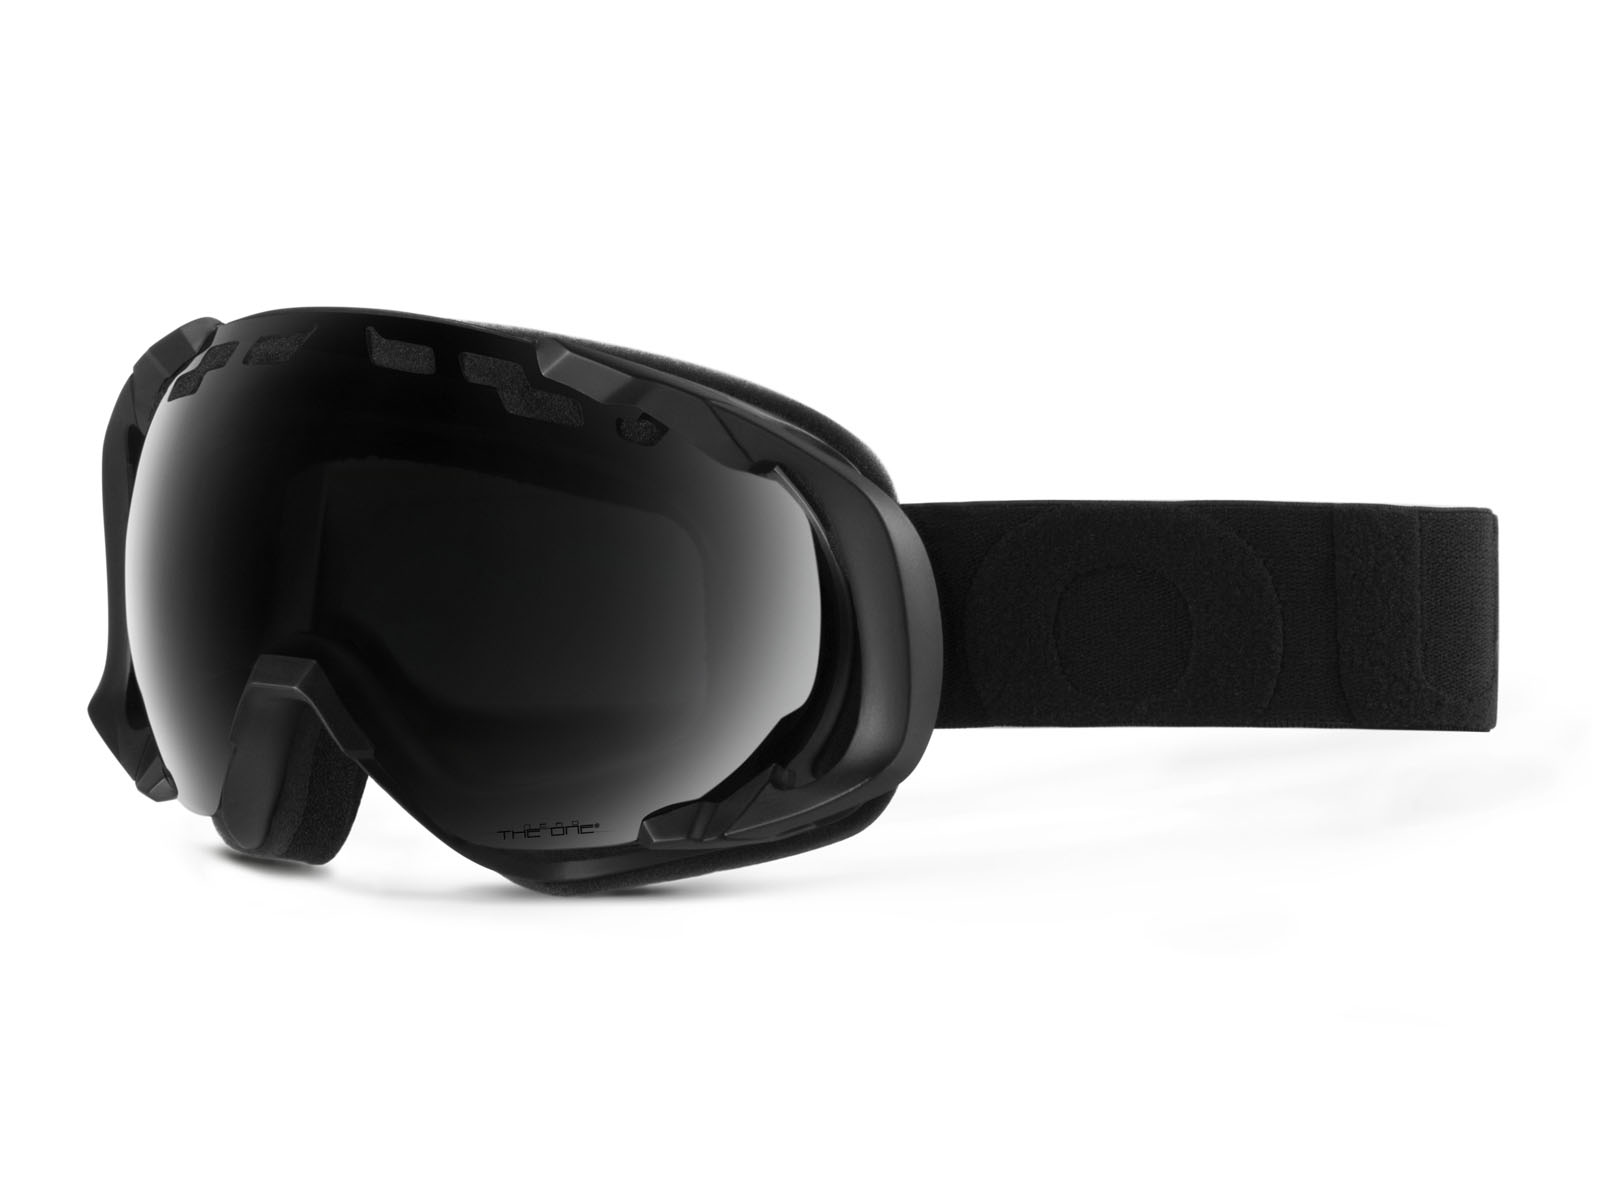 EDGE BLACK THE ONE NERO GOGGLE